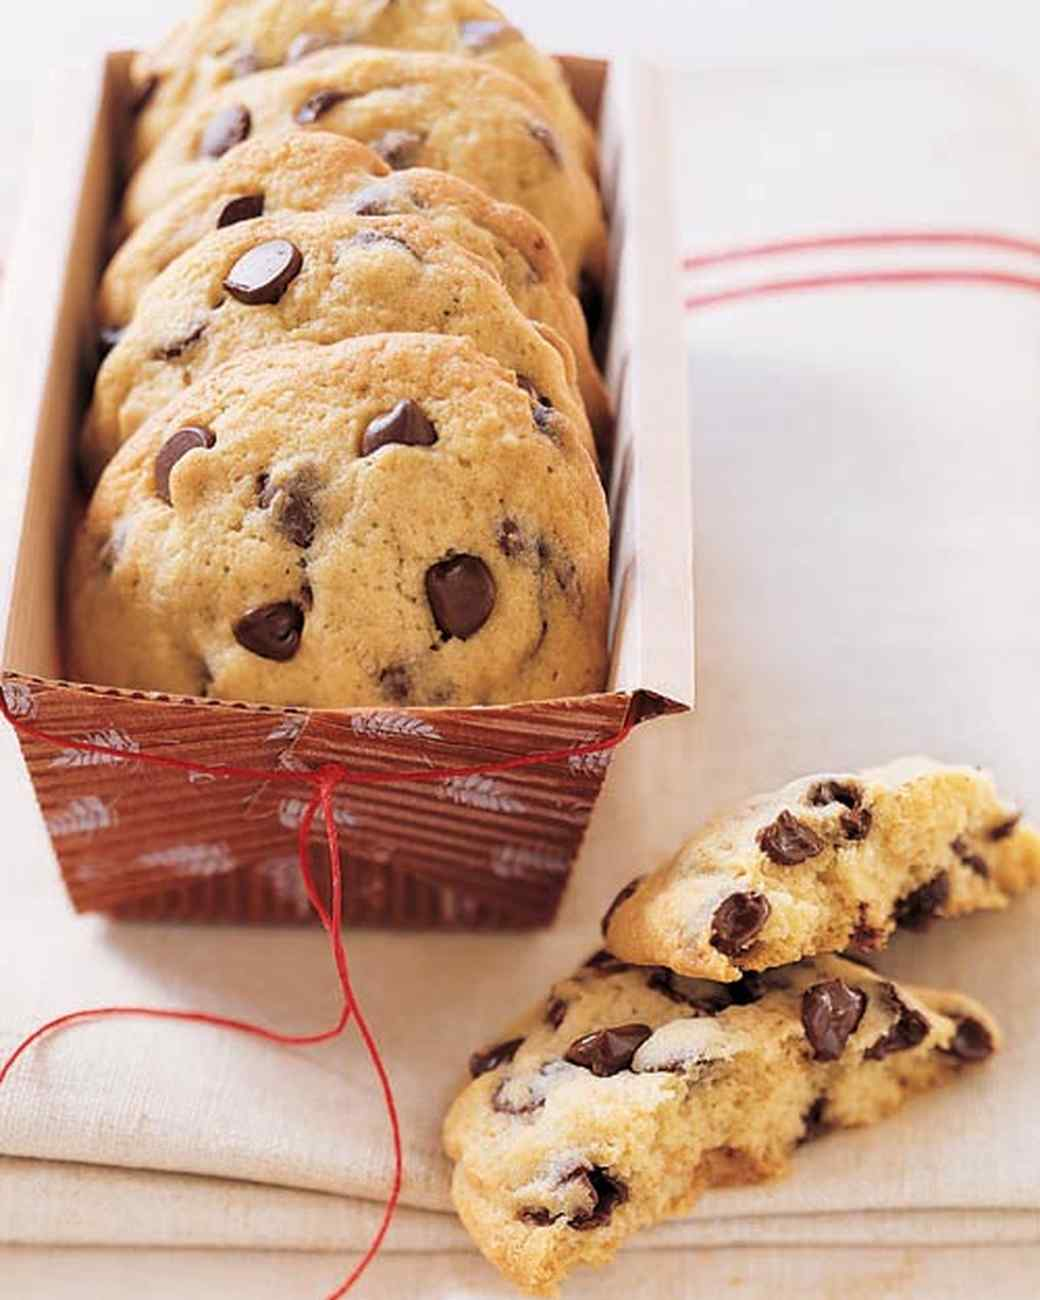 Cakey Chocolate Chip Cookies Recipe